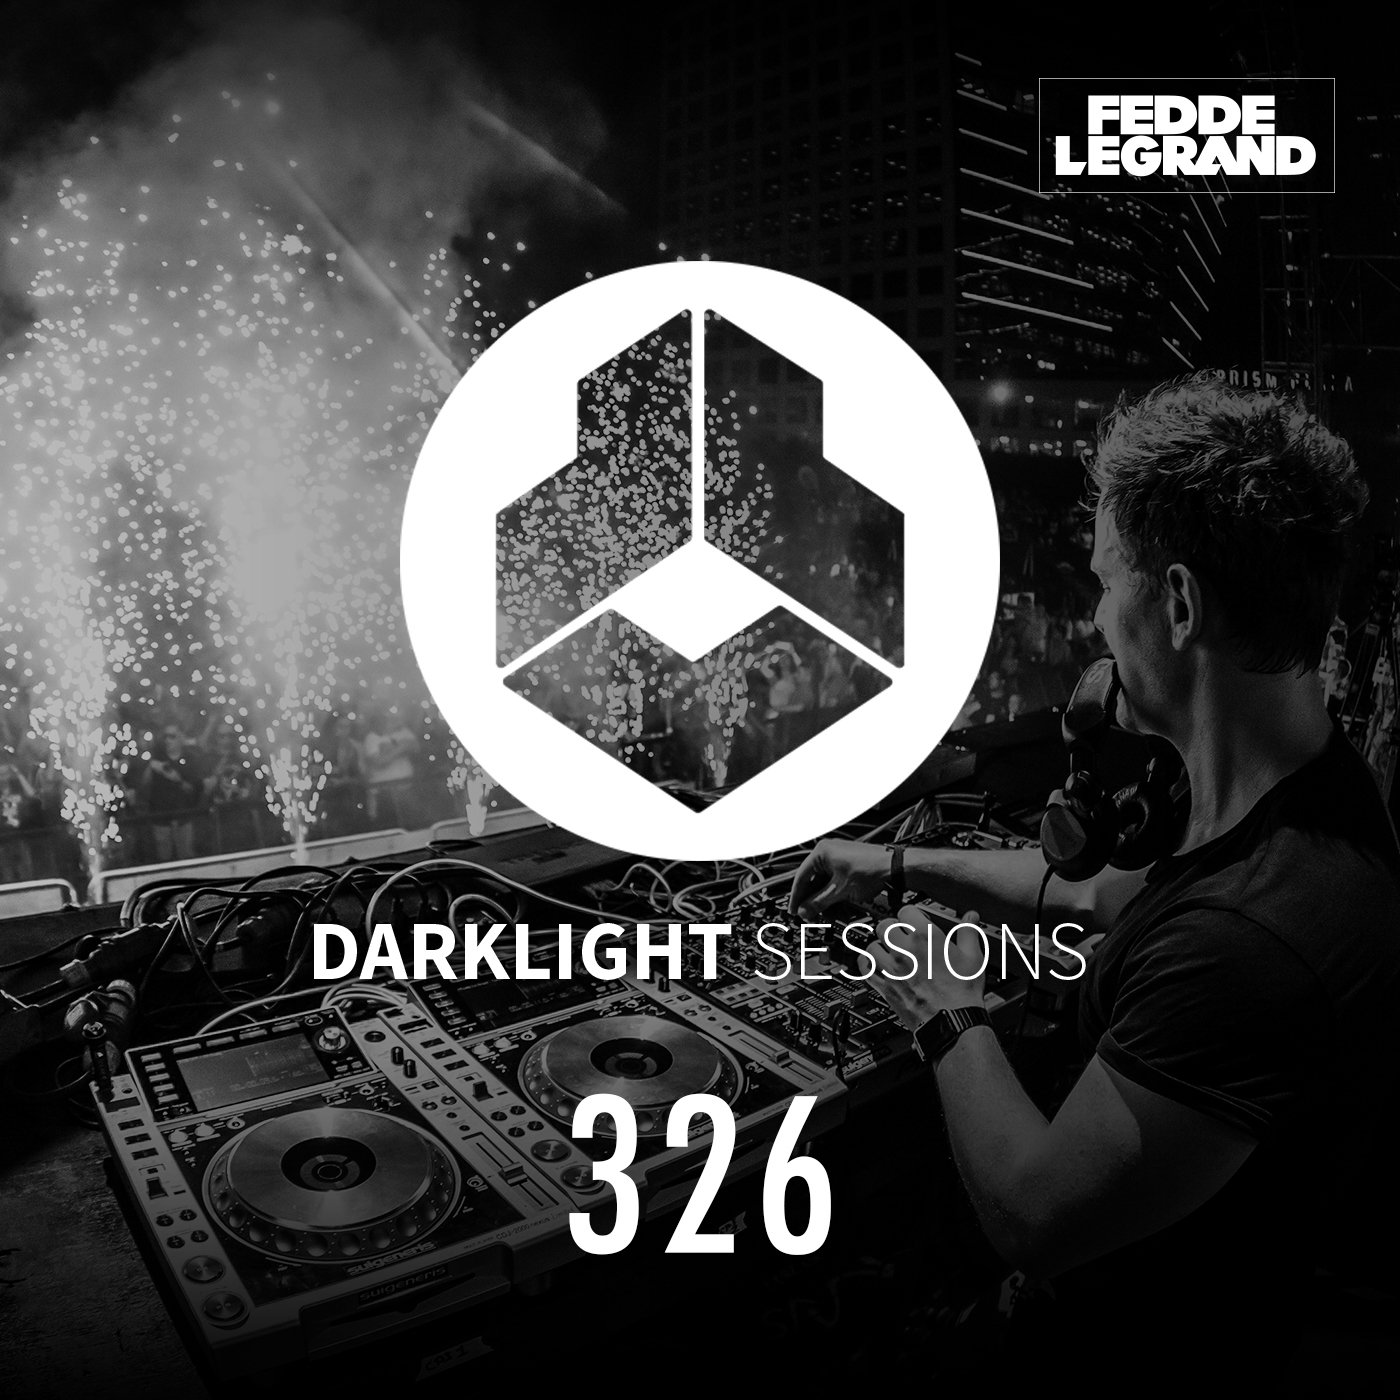 Darklight Sessions 326